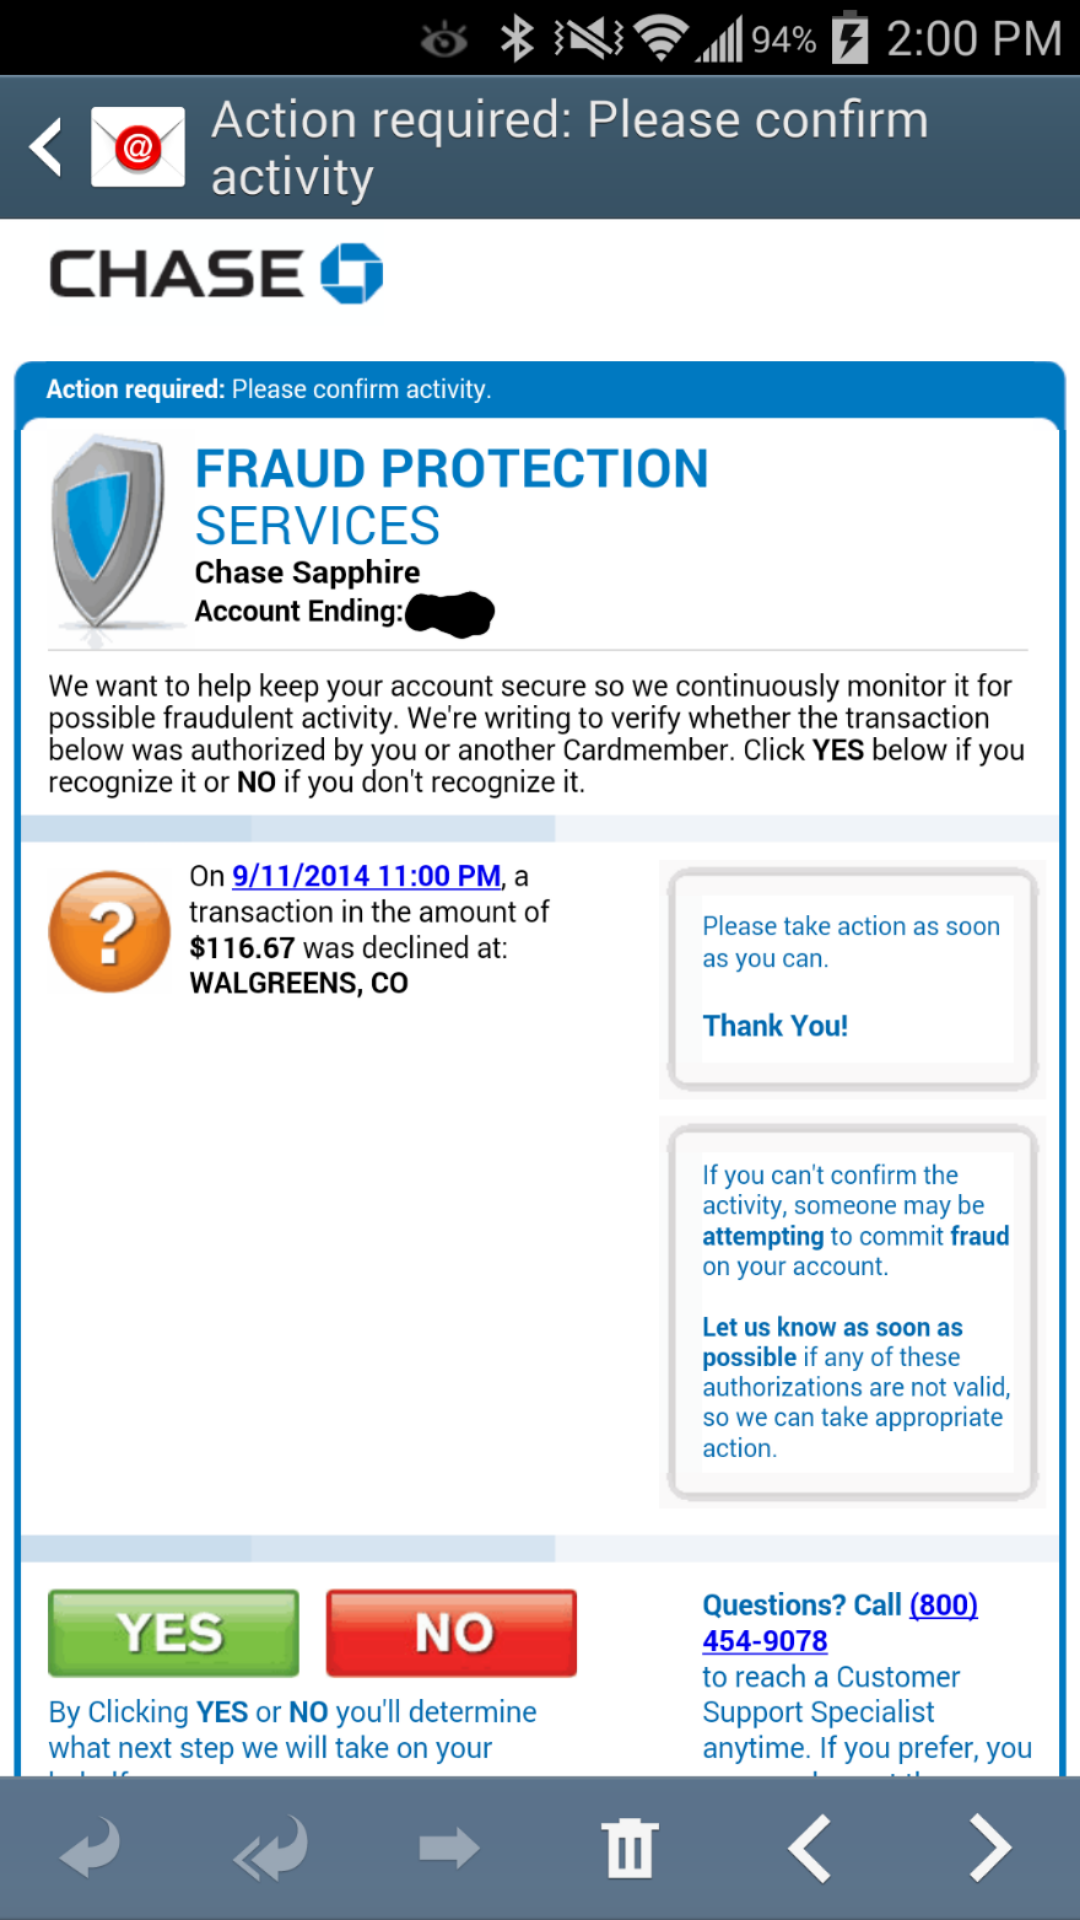 Chase Sapphire Credit Fraud Alert - Page 2 - myFICO ...